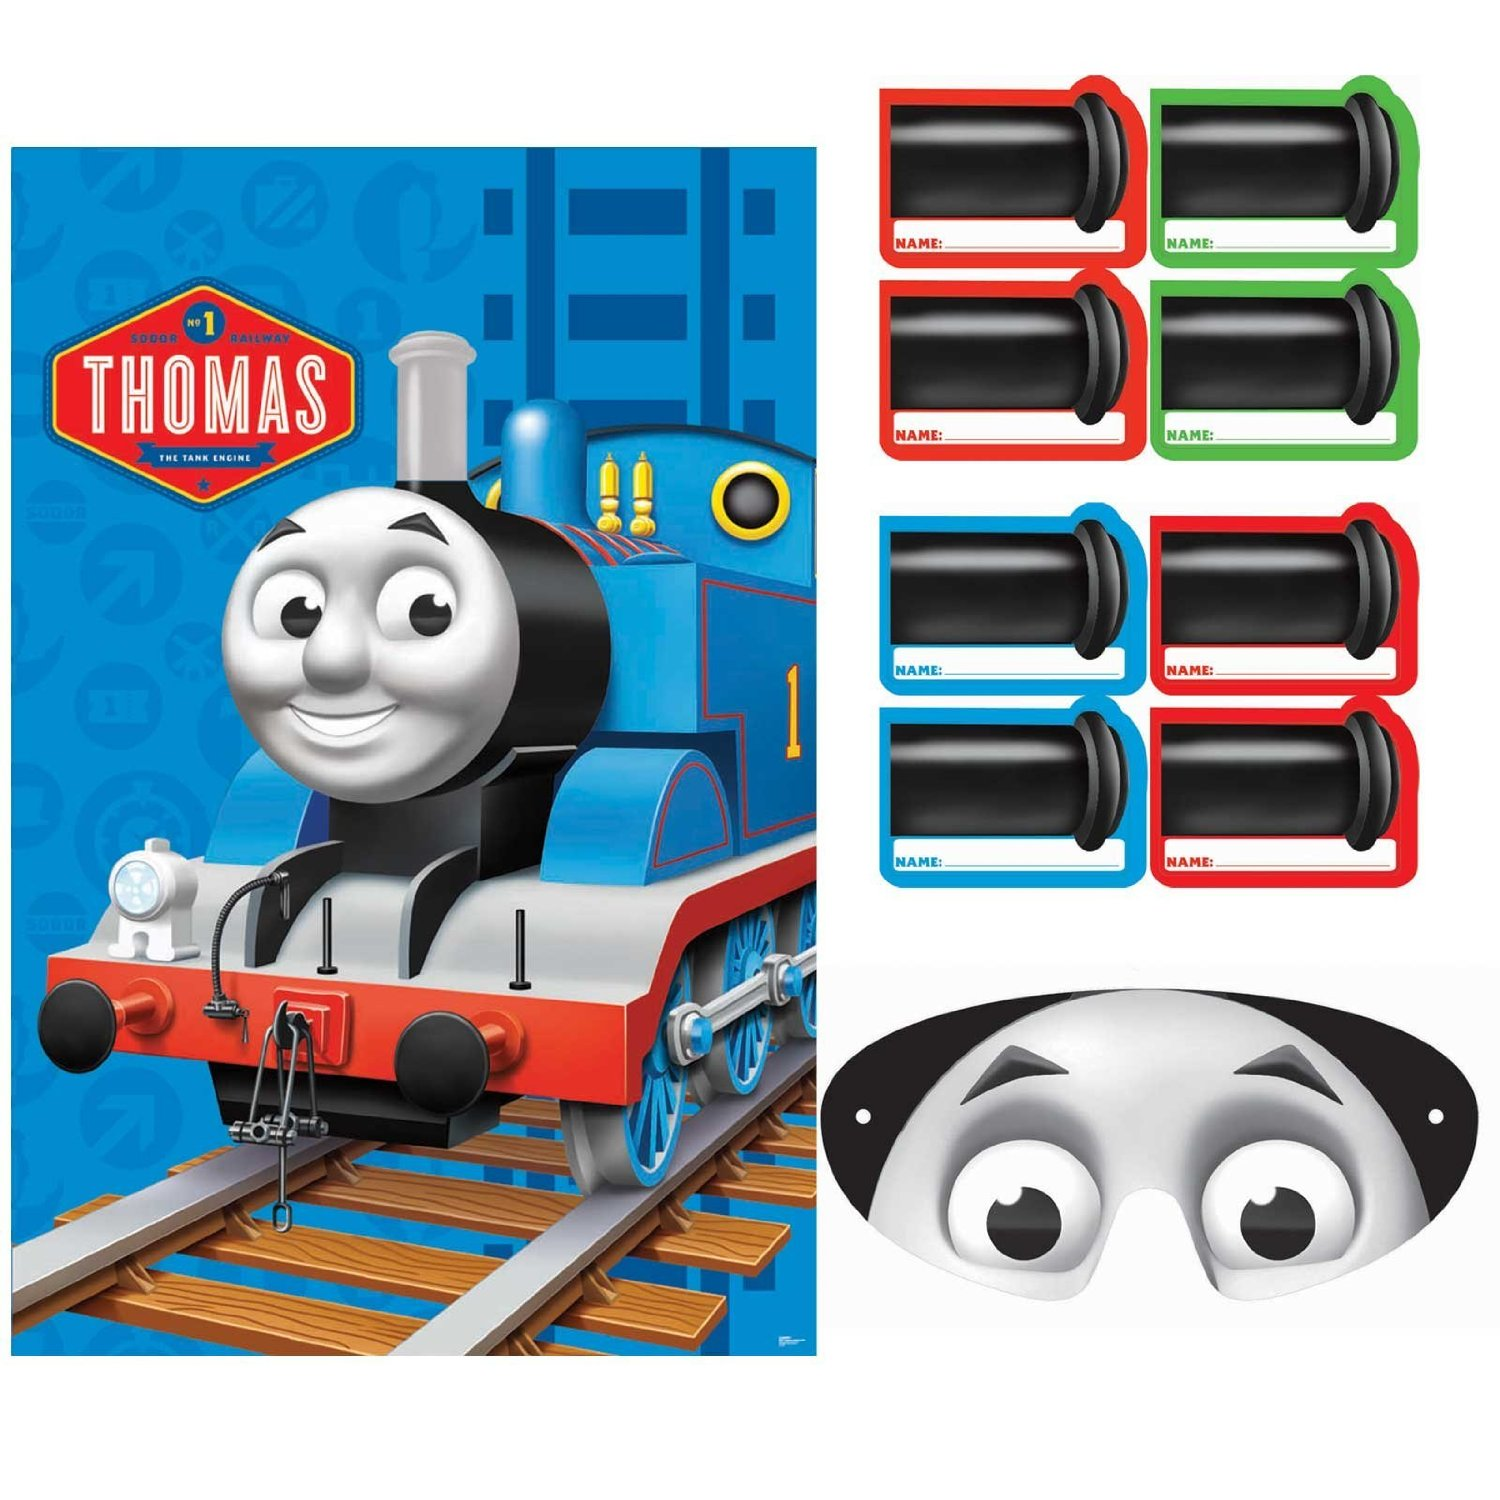 Thomas the train birthday party games ideas and printables for Thomas the tank engine face template